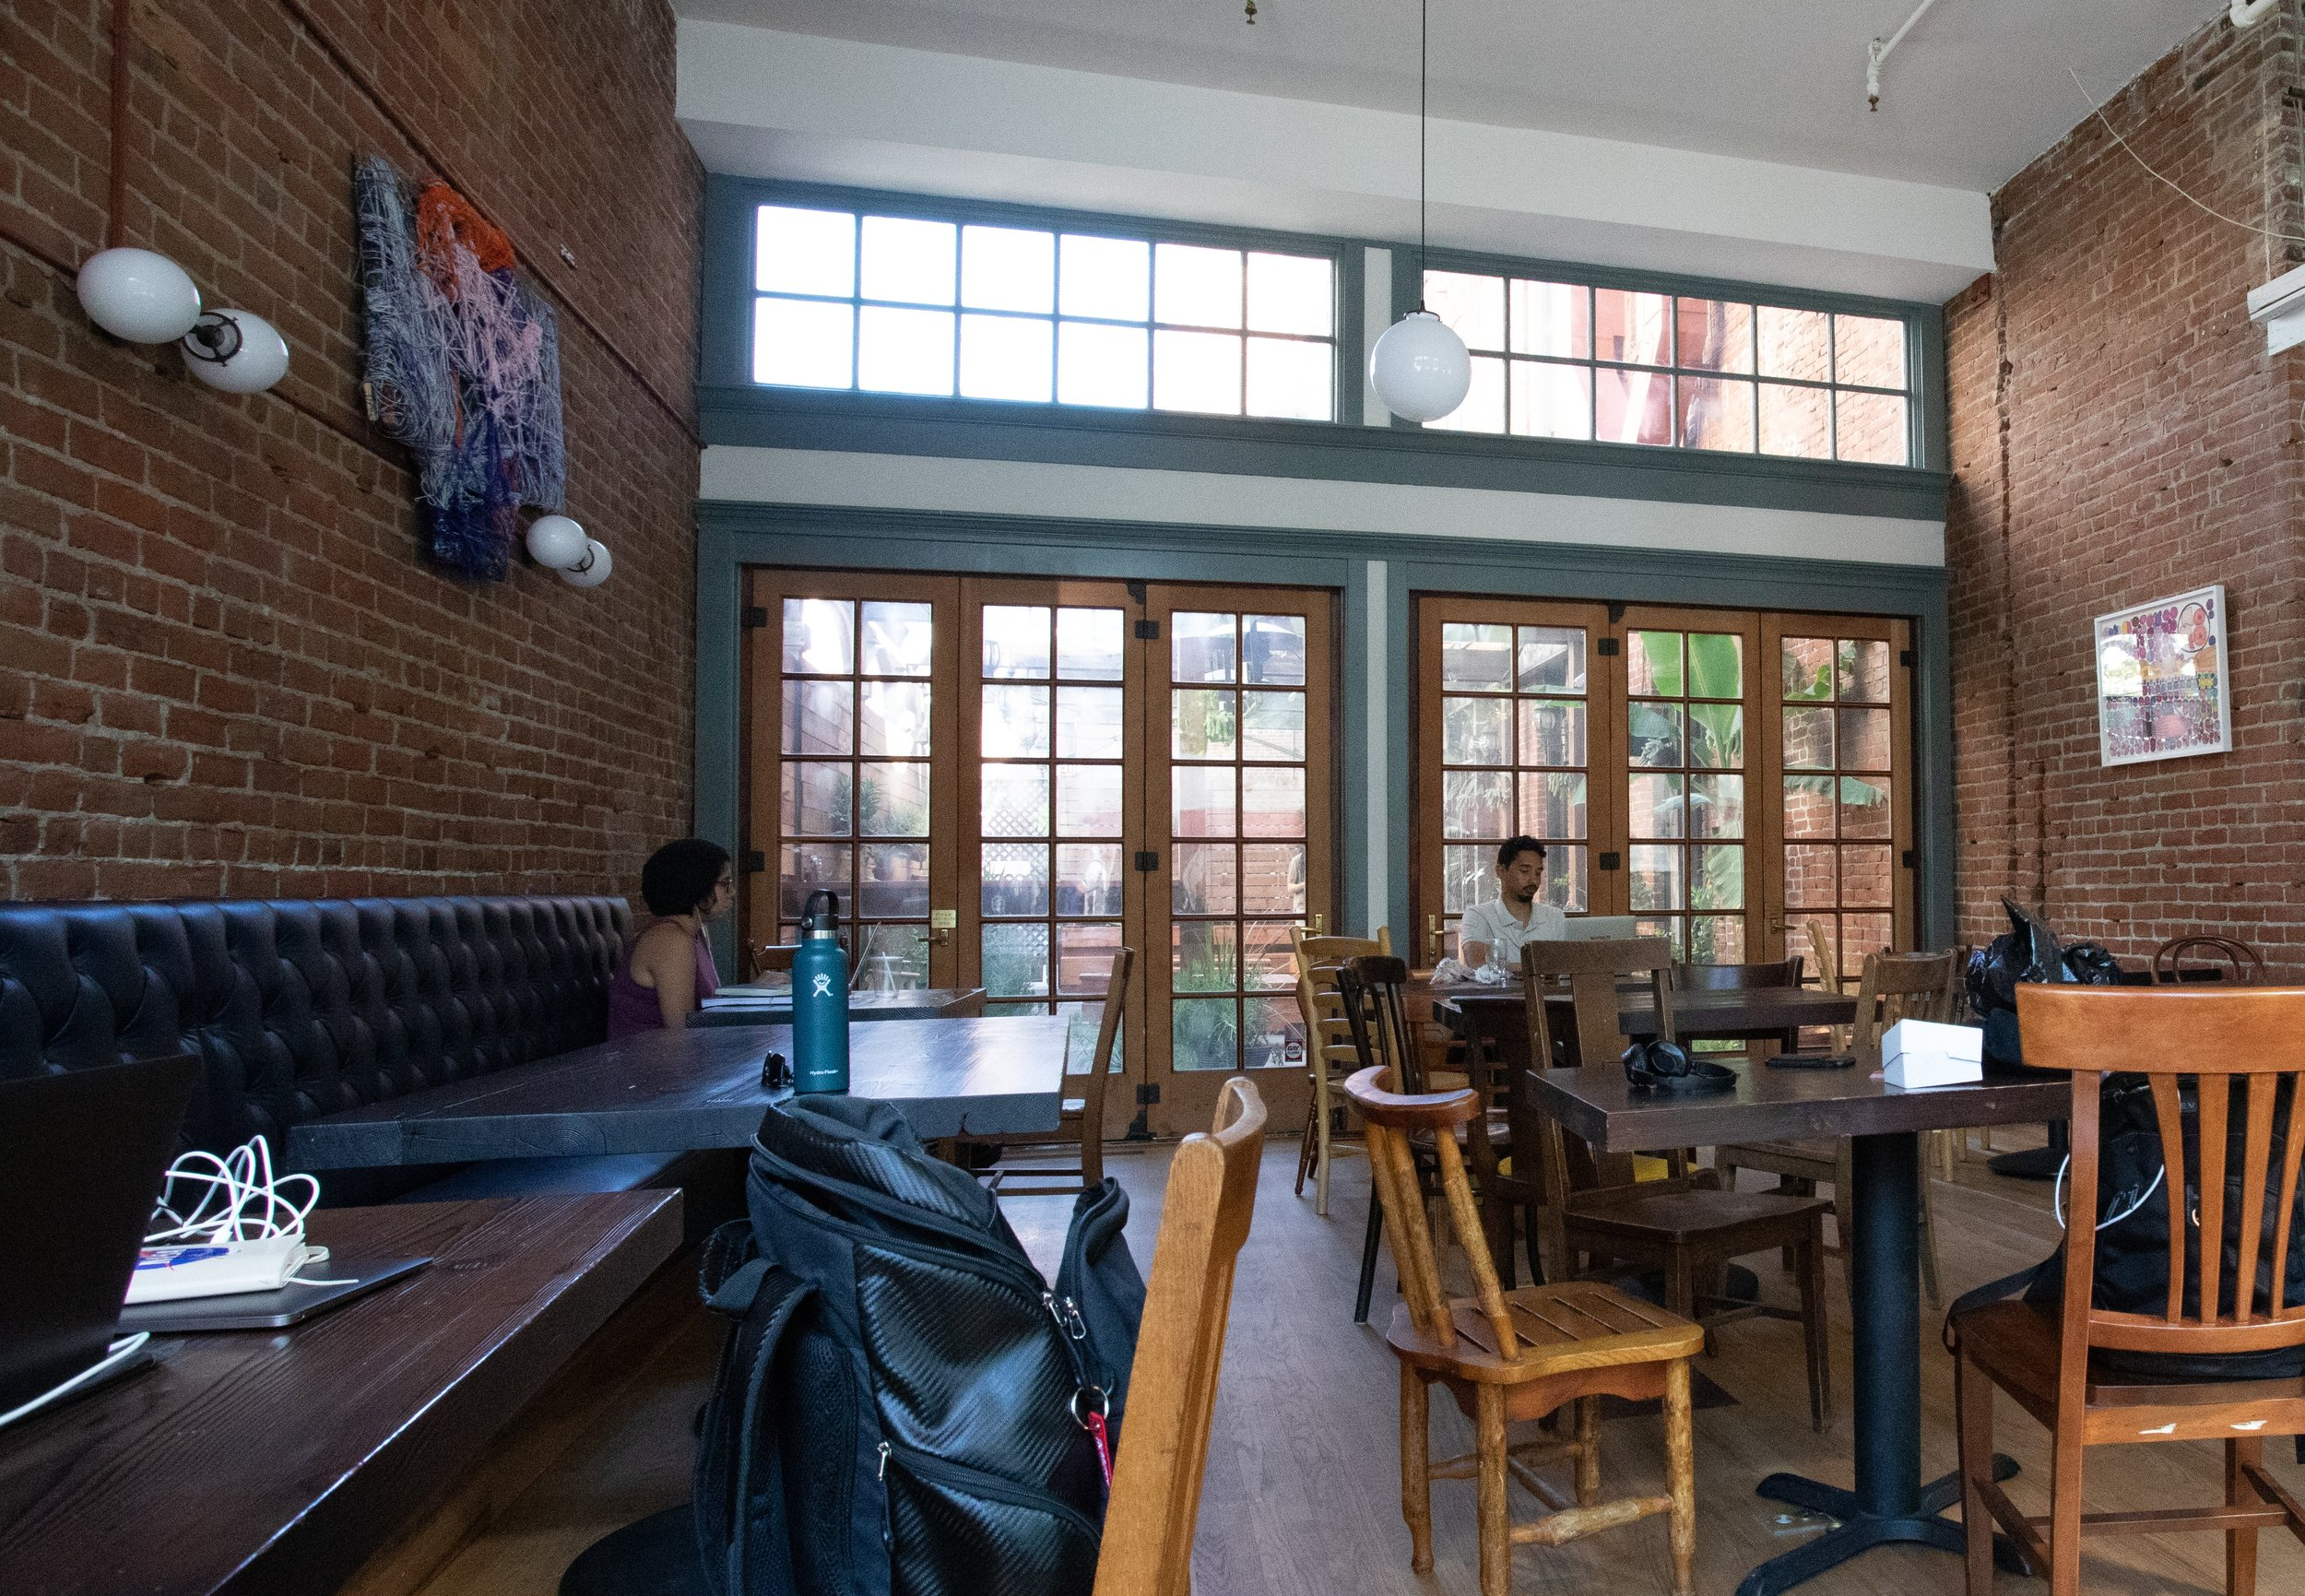 upstairs_1.jpg